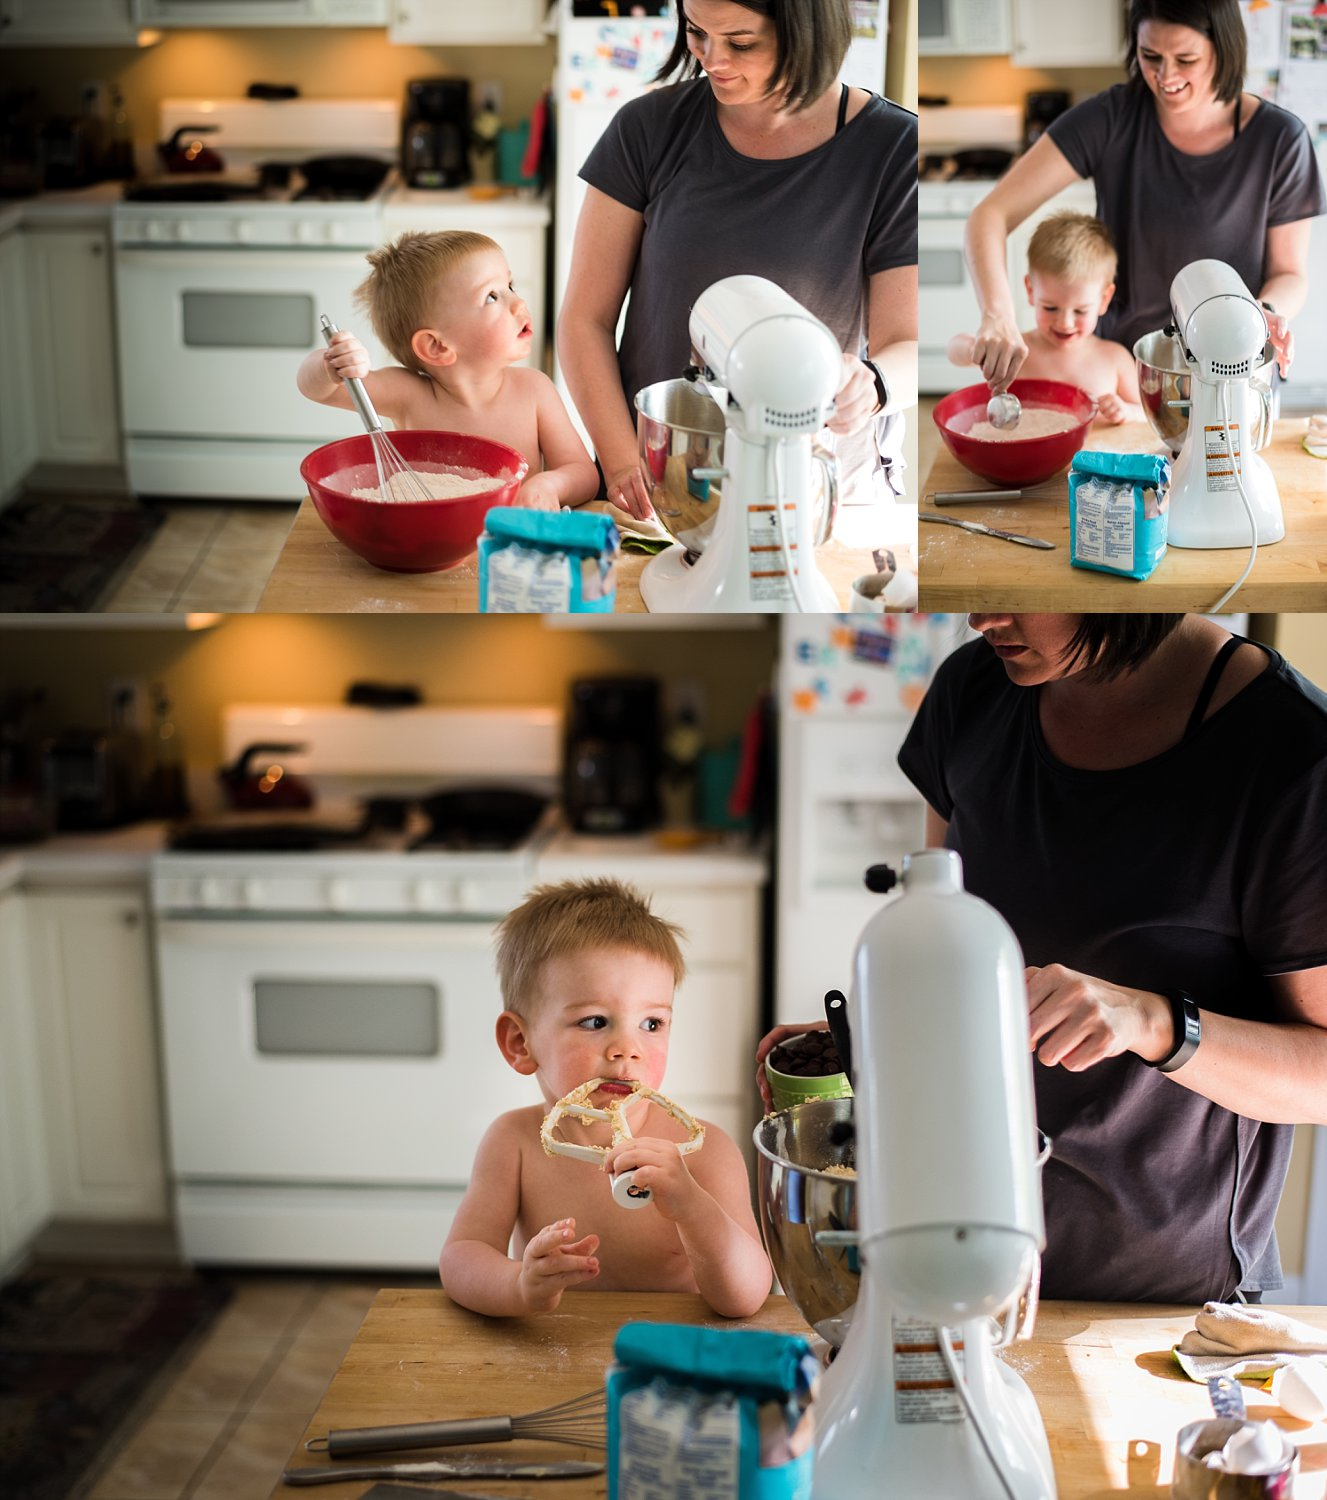 I set up and handed my camera over to my husband to capture these sweet moments of me baking with my son last summer. I will cherish these FOREVER!